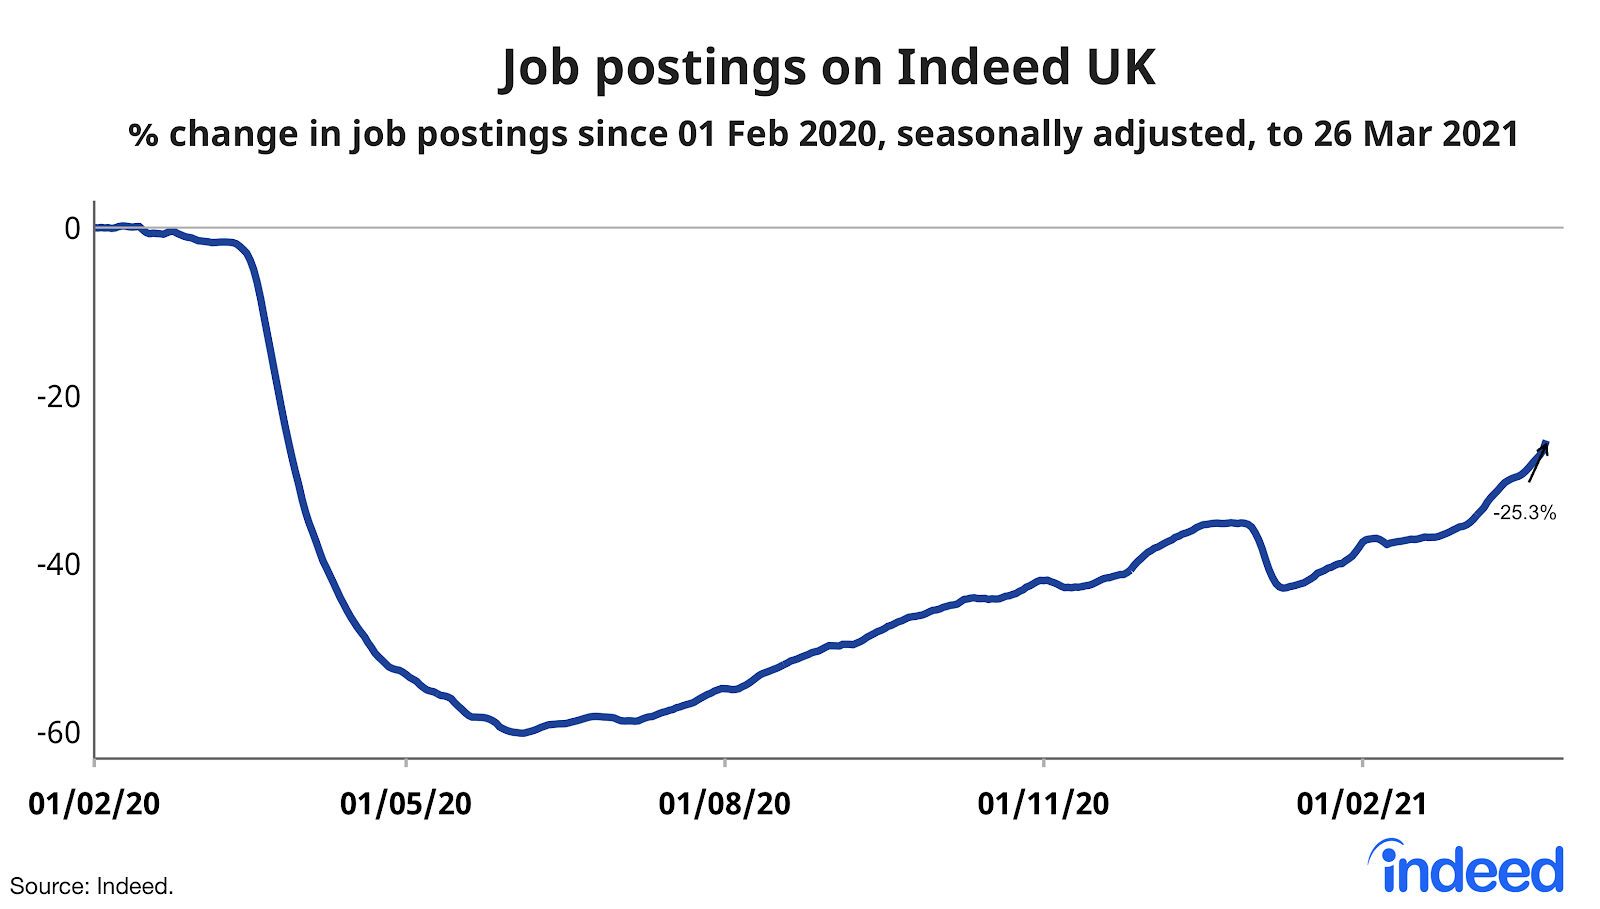 Line graph showing job postings on Indeed UK